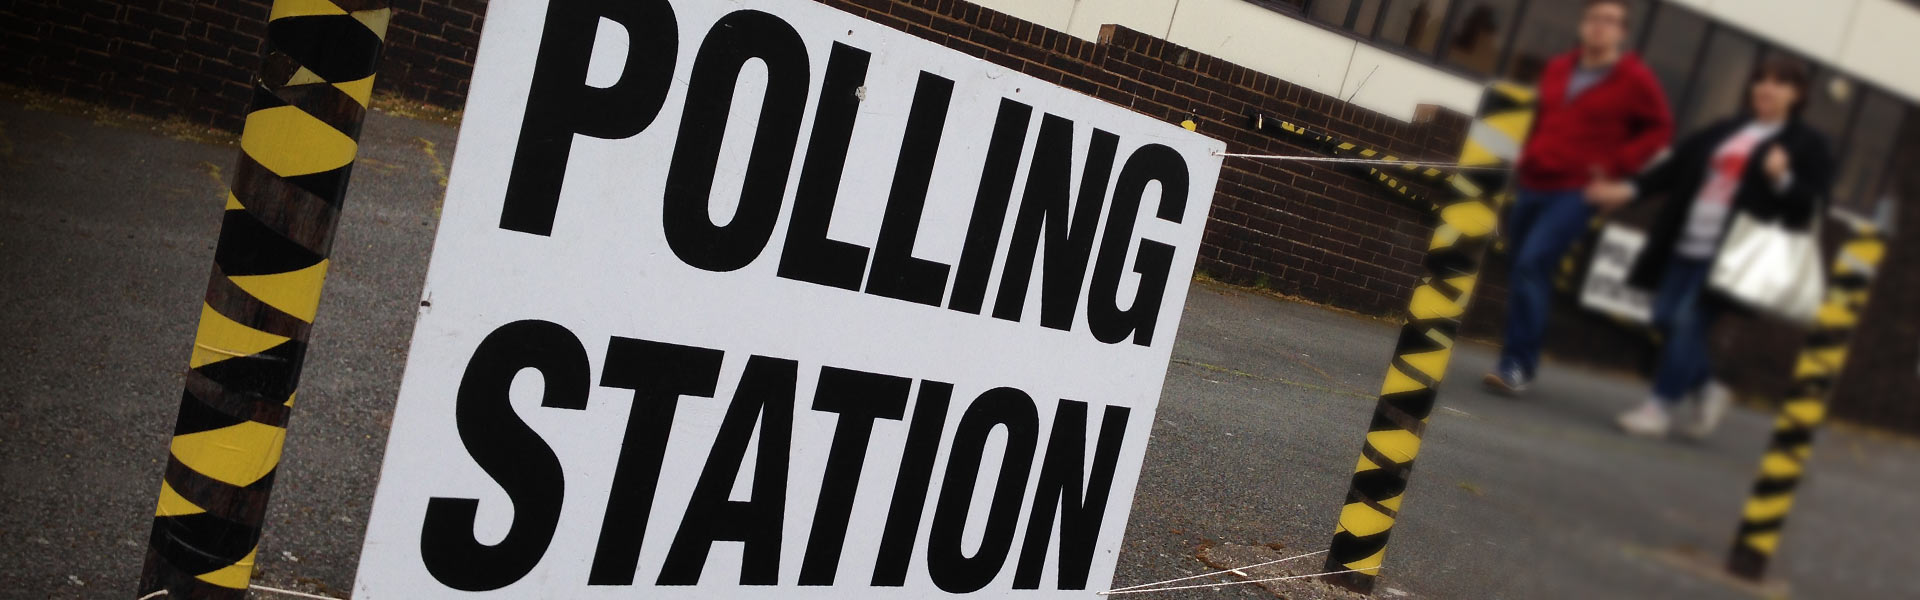 Polling station in Ramsgate